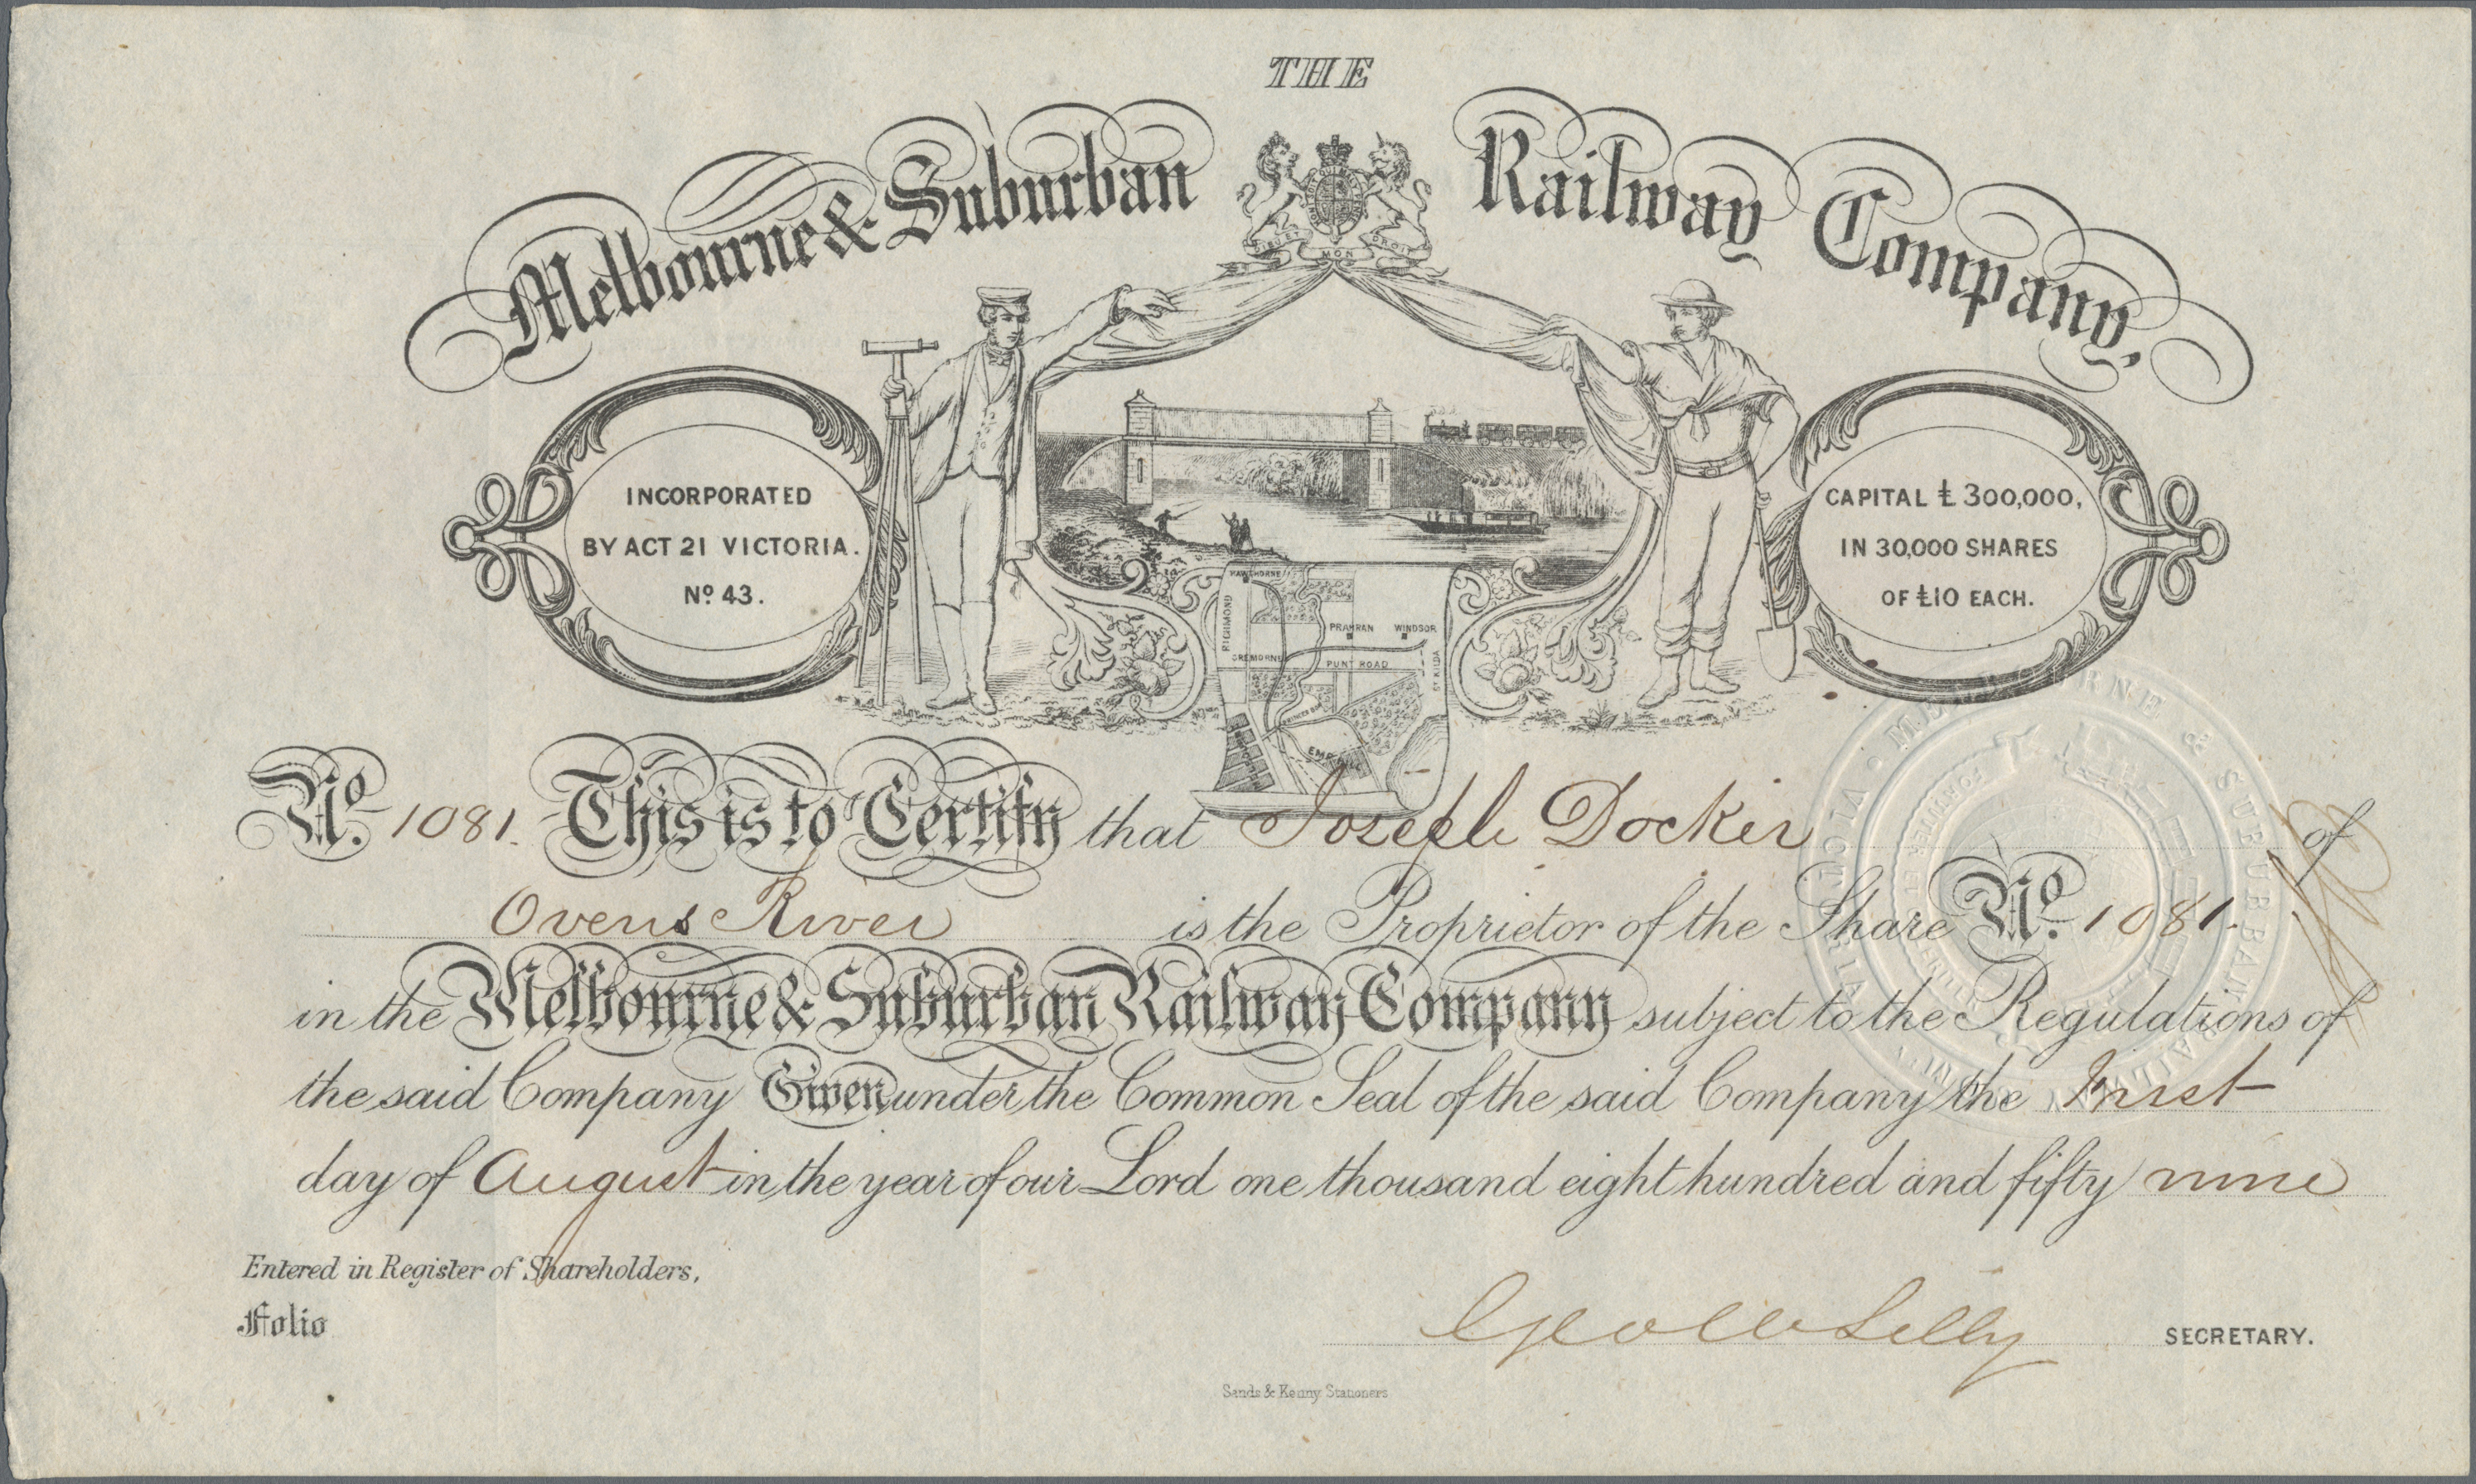 Lot 00023 - Australia / Australien | Banknoten  -  Auktionshaus Christoph Gärtner GmbH & Co. KG Sale #48 The Banknotes